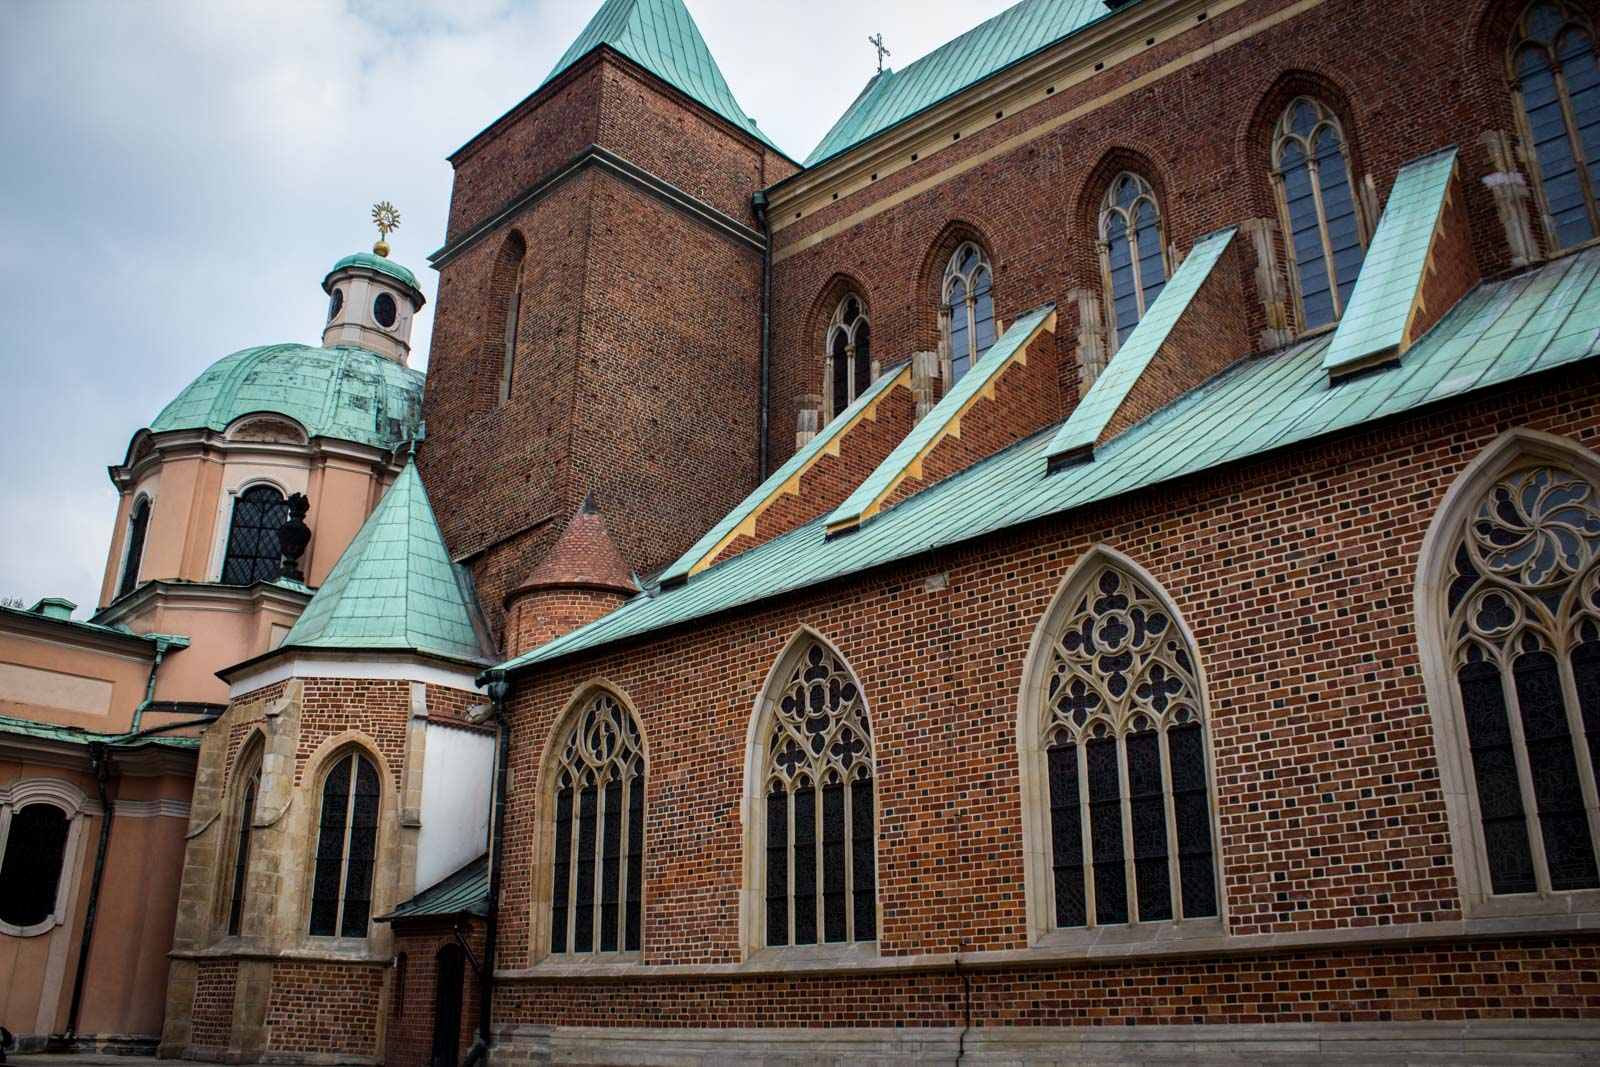 Guided tour of Wroclaw and Centennial Hall, Poland